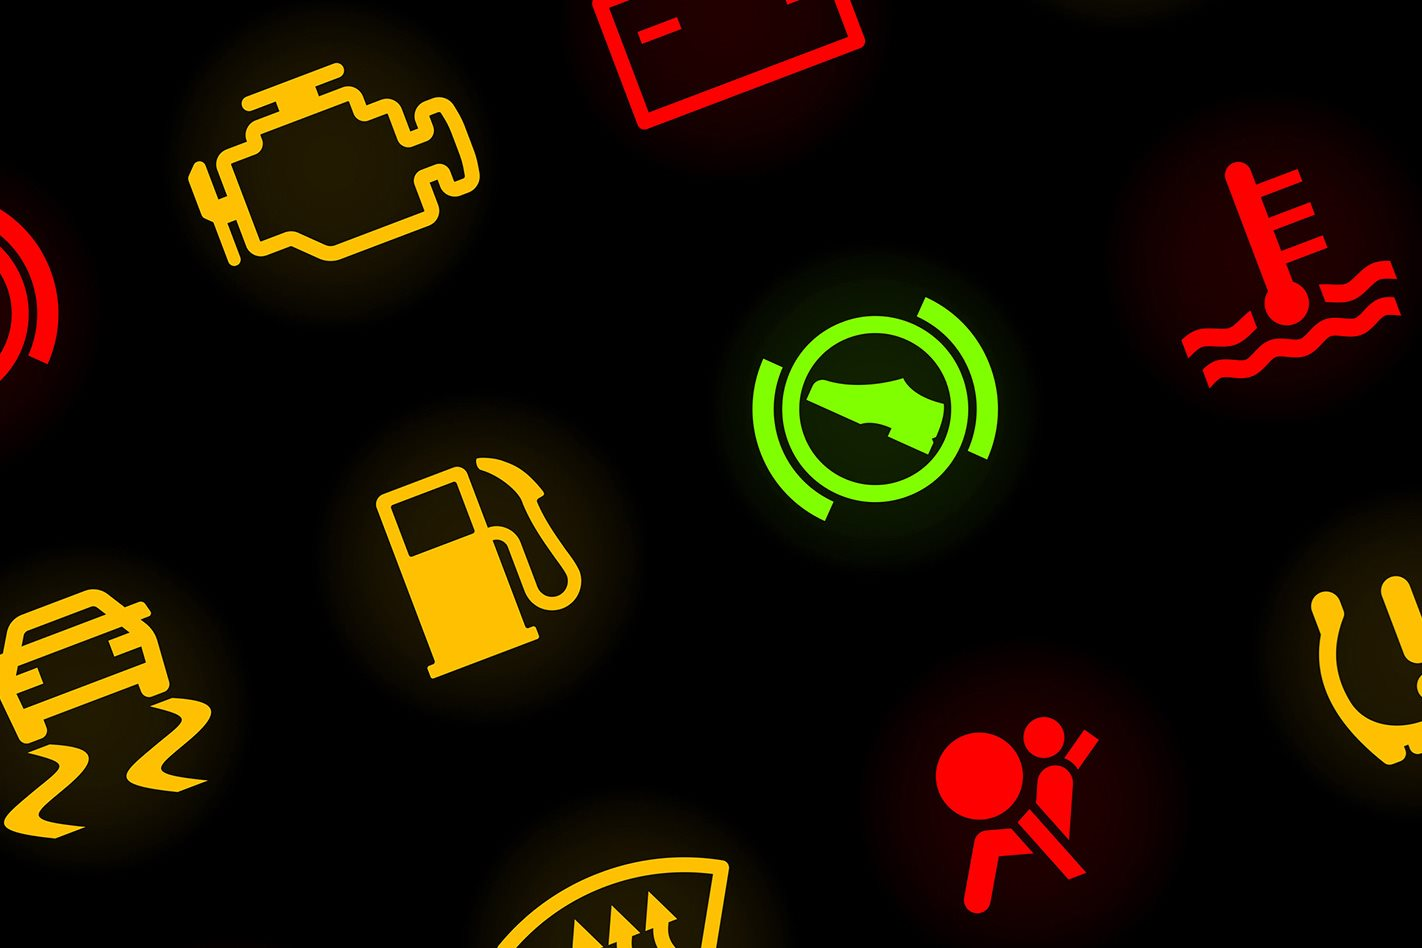 Know your dashboard warning lights biocorpaavc Choice Image